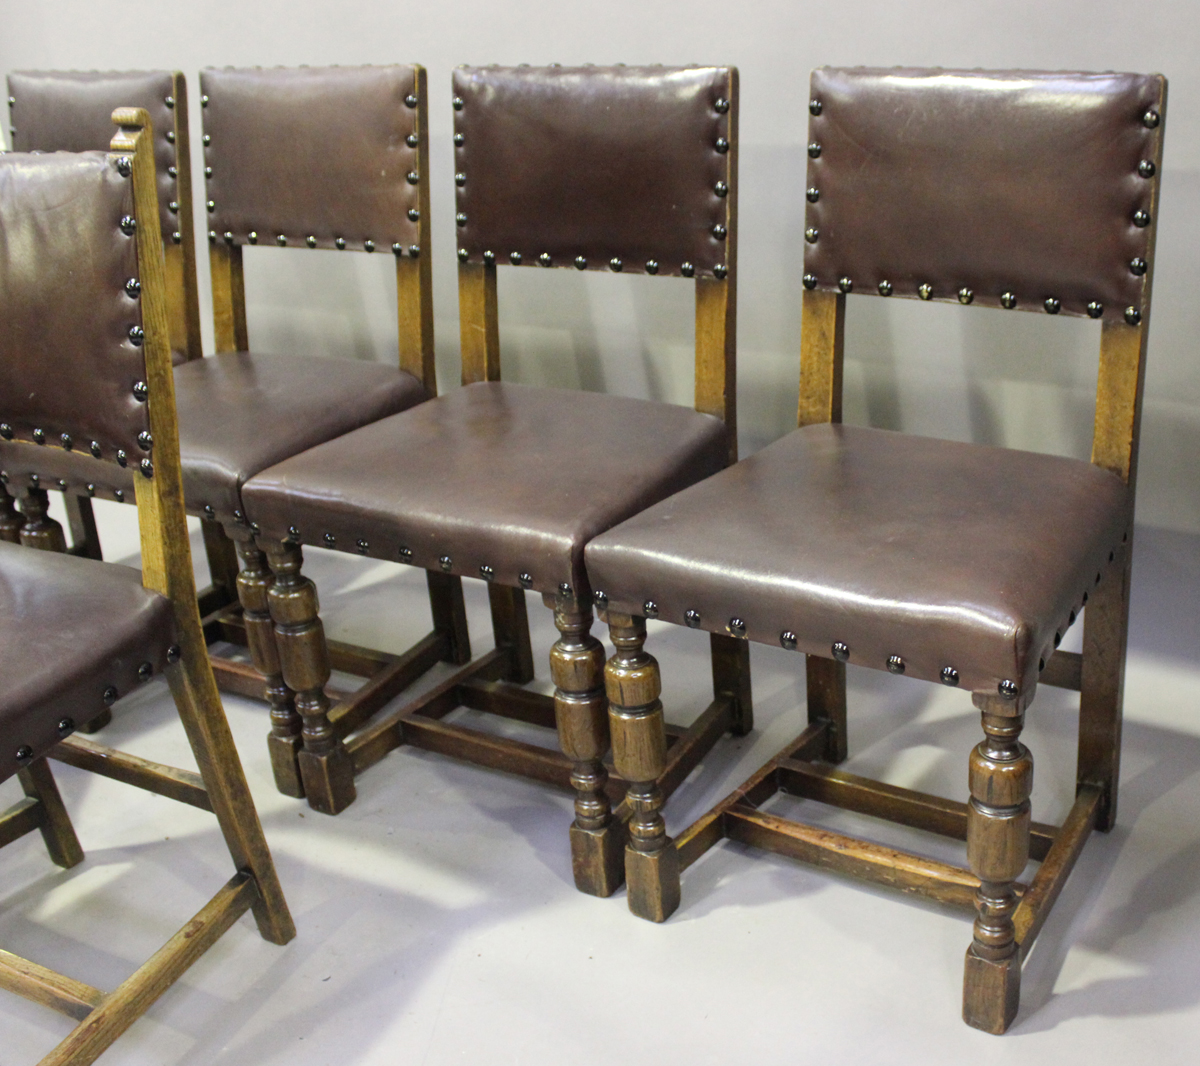 An early/mid-20th century harlequin set of seven oak framed dining chairs, comprising a set of - Image 3 of 4